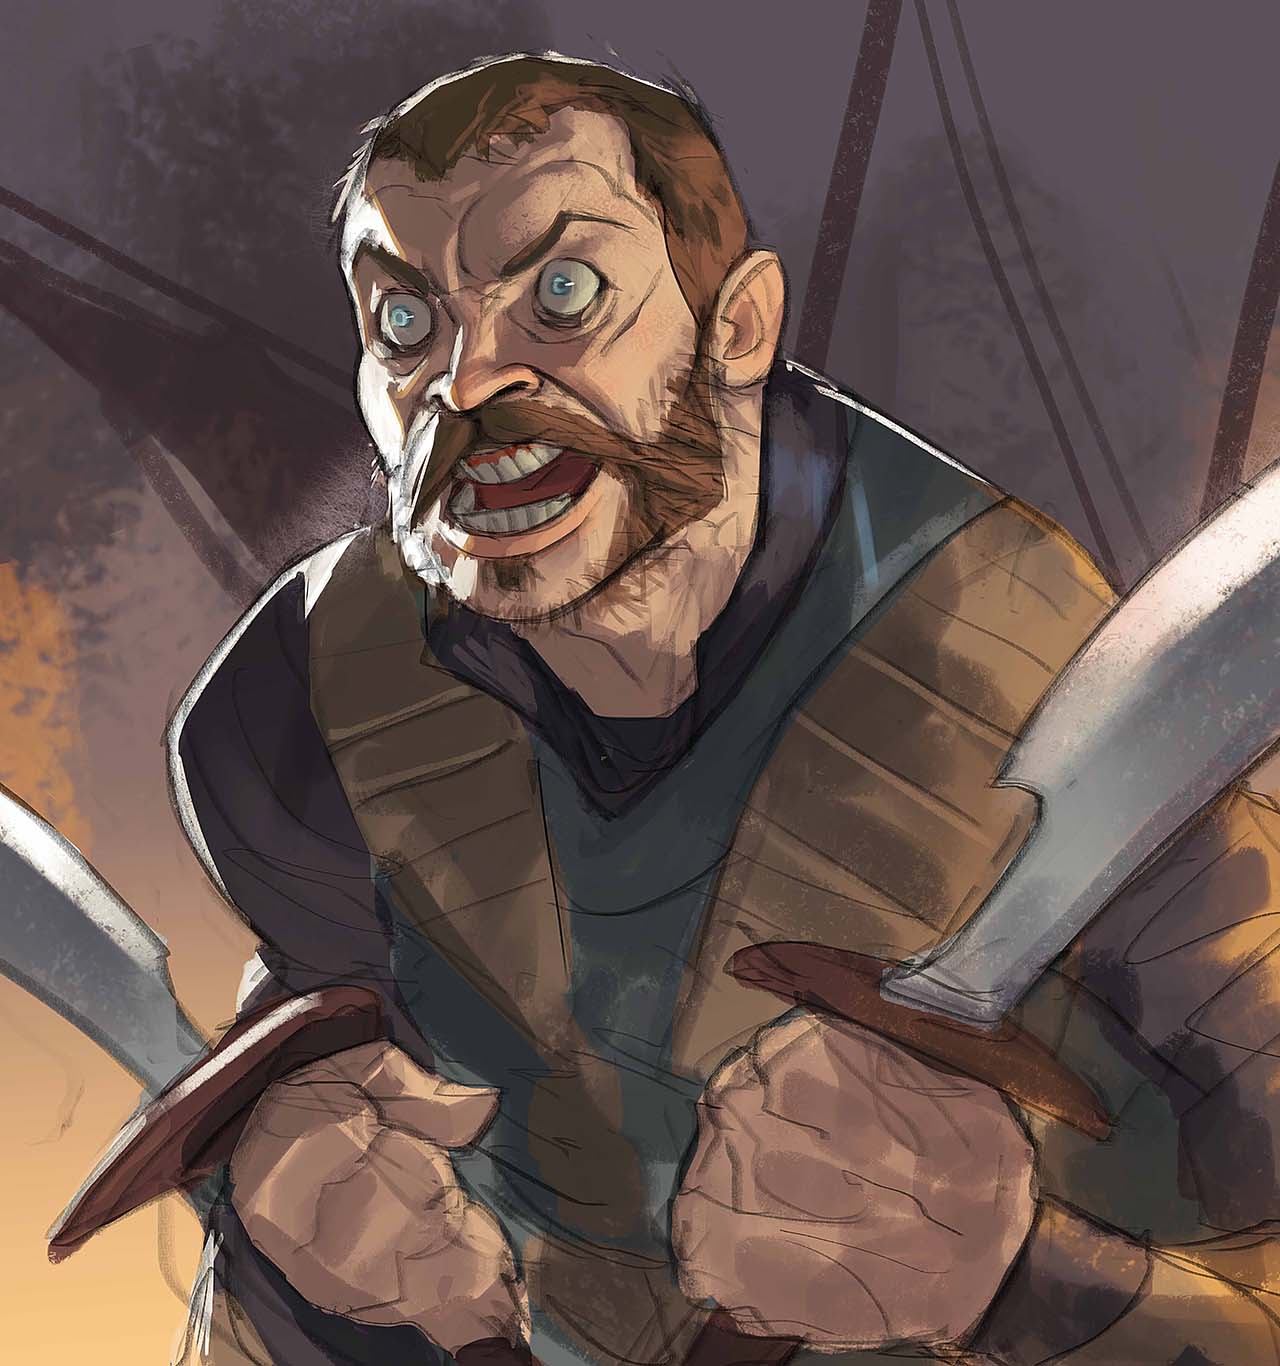 Artist Creates Unique Character Arts From Game Of Thrones – Euron Greyjoy Character Art By Ramón Nuñez